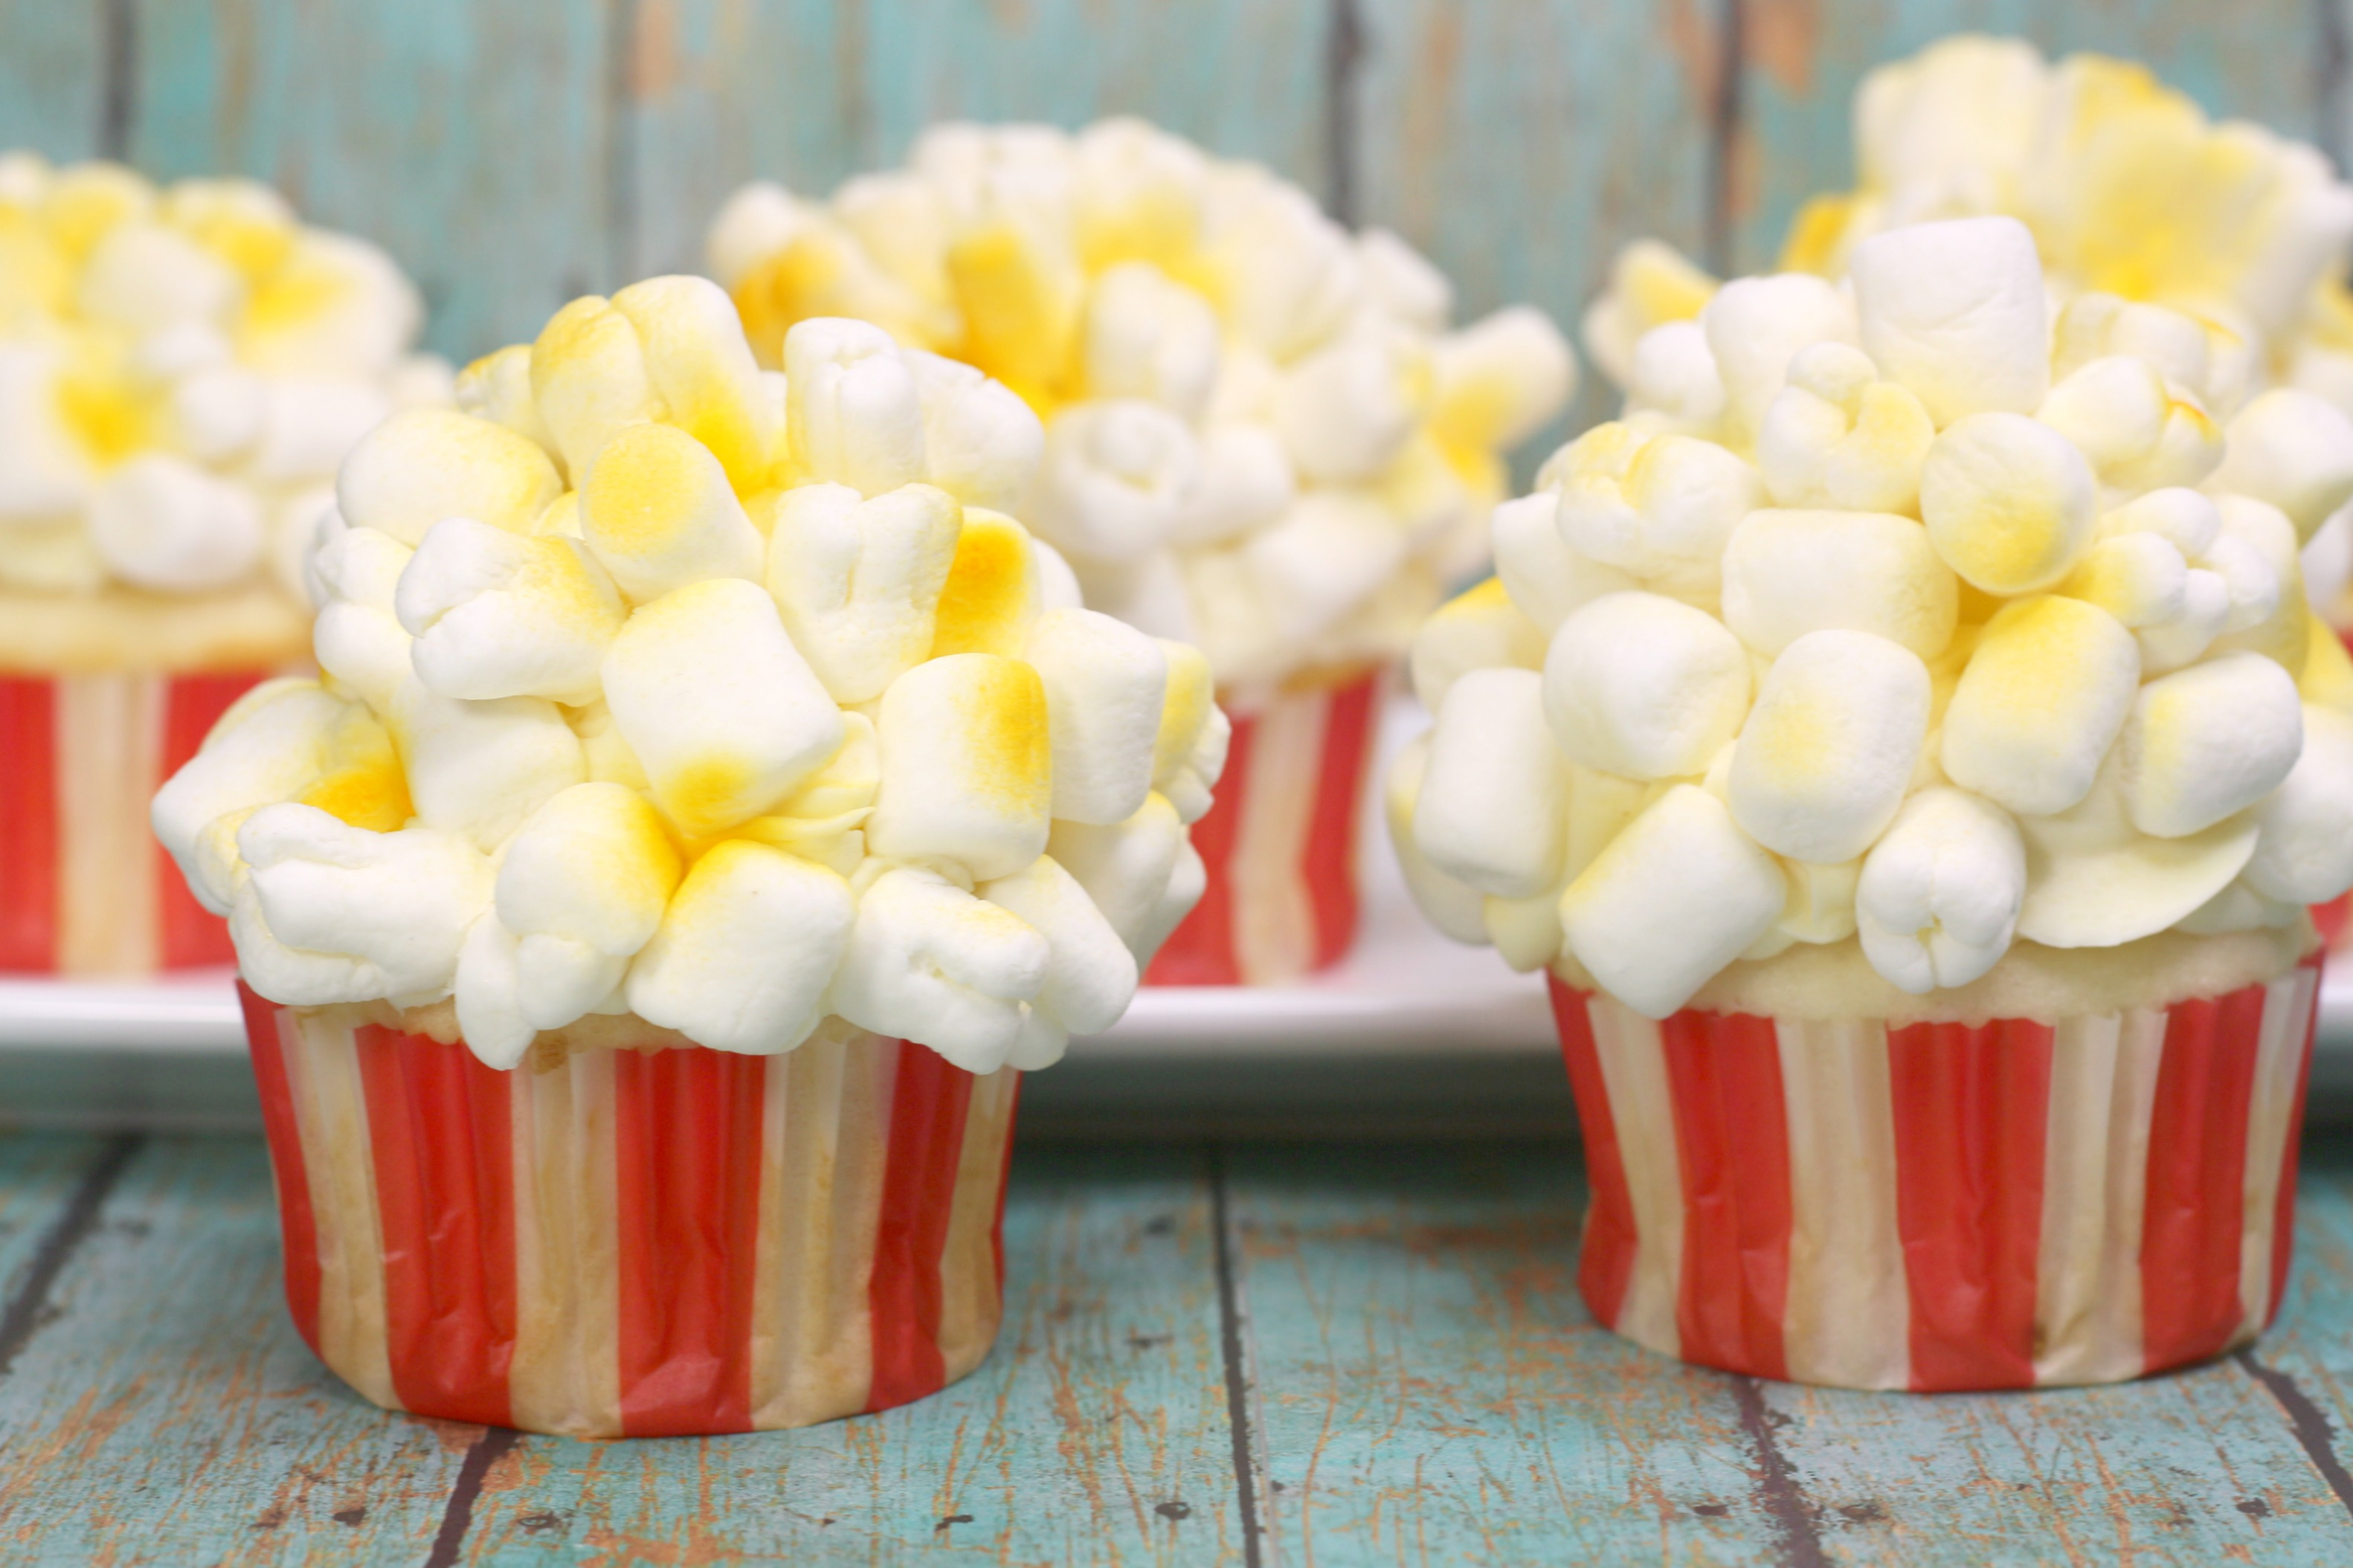 Dumbo Cupcakes Inspired by Disney's Live Action Dumbo